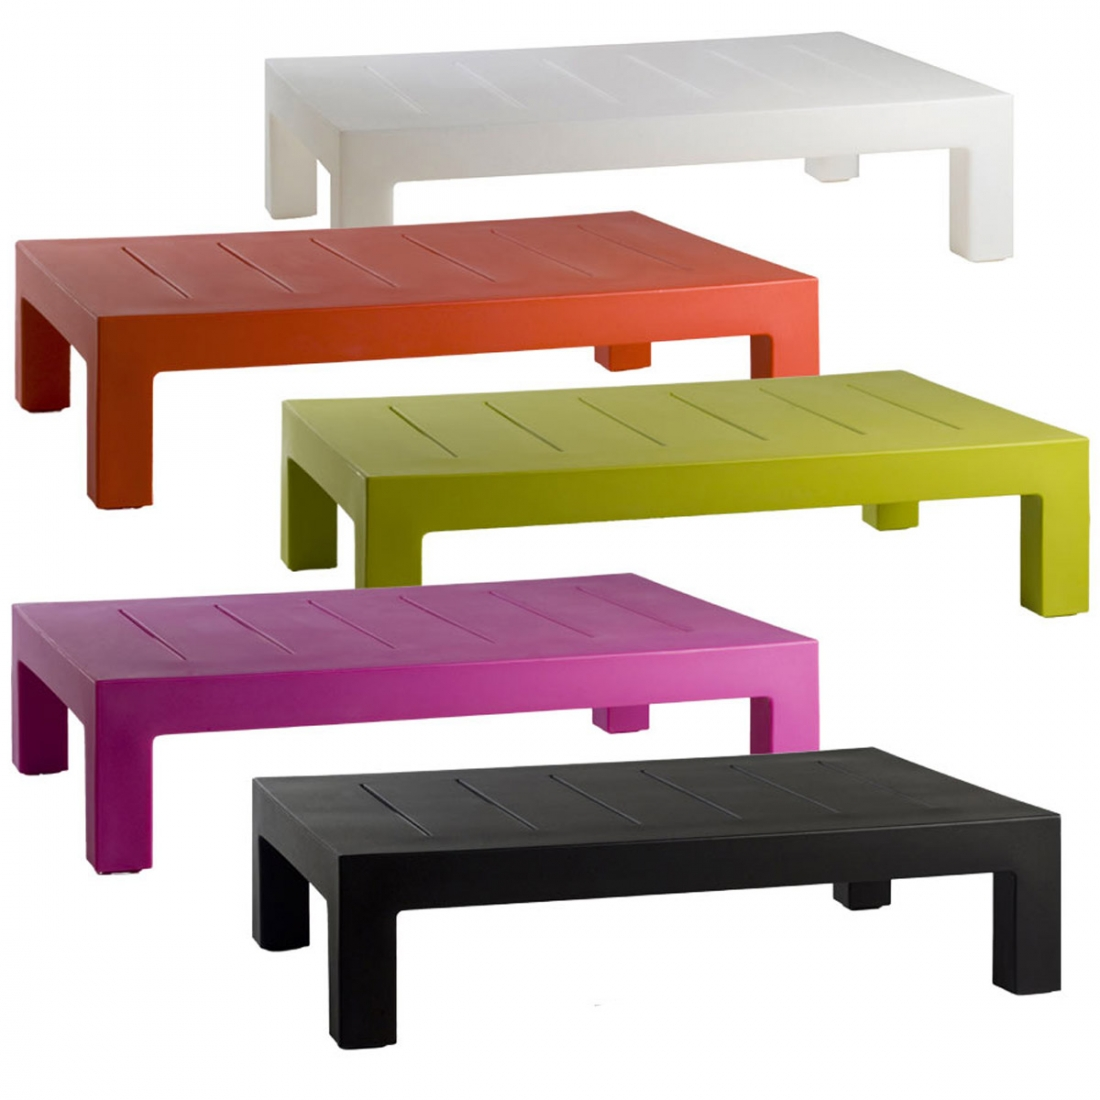 Table basse design d ext rieur jut par vondom for Table de salon de jardin plastique